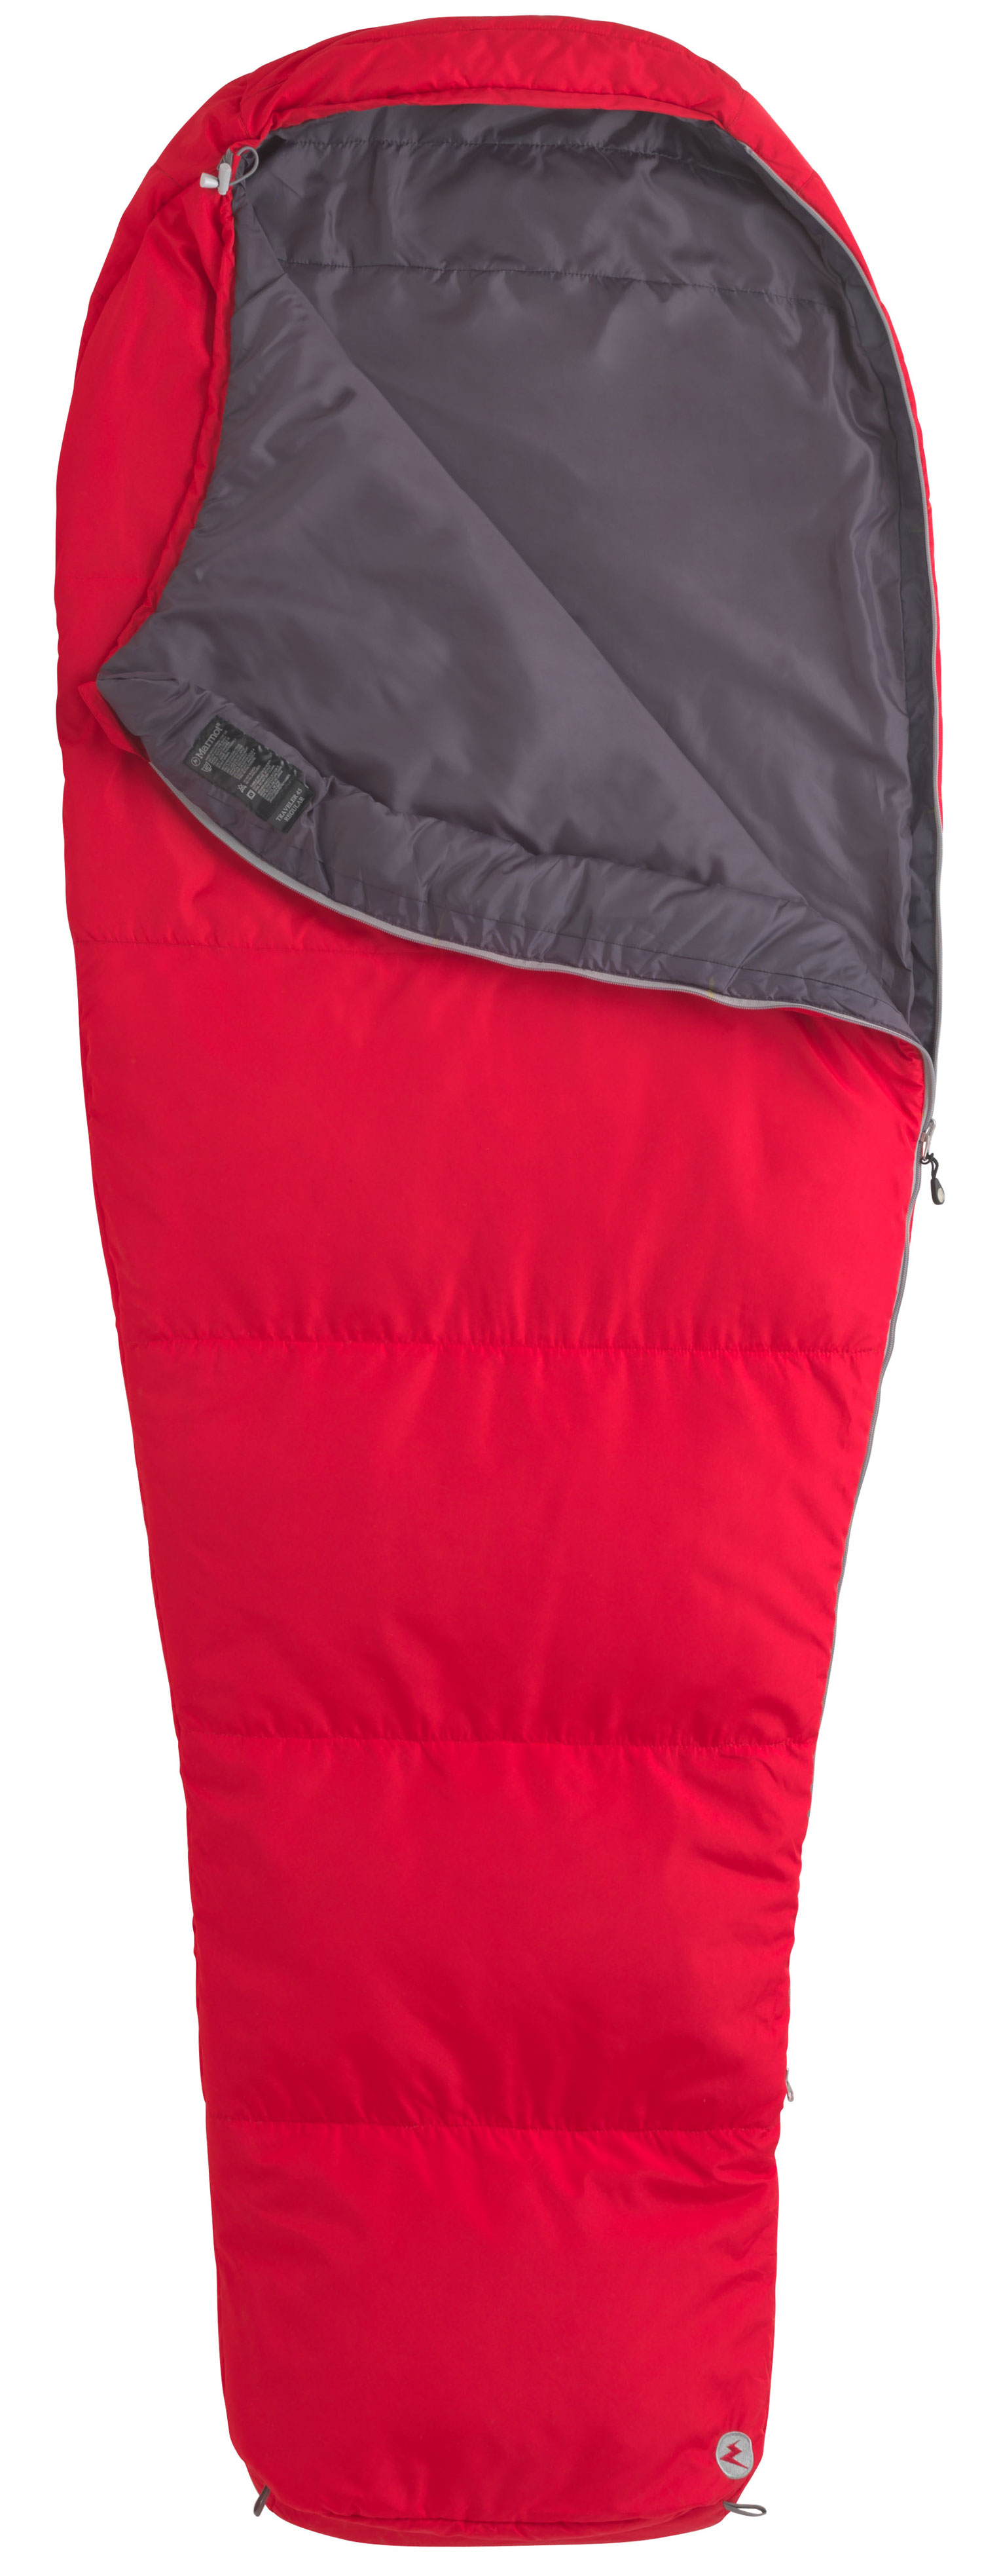 Camp and Hike Marmot Nanowave 45 Sleeping Bag - $63.95